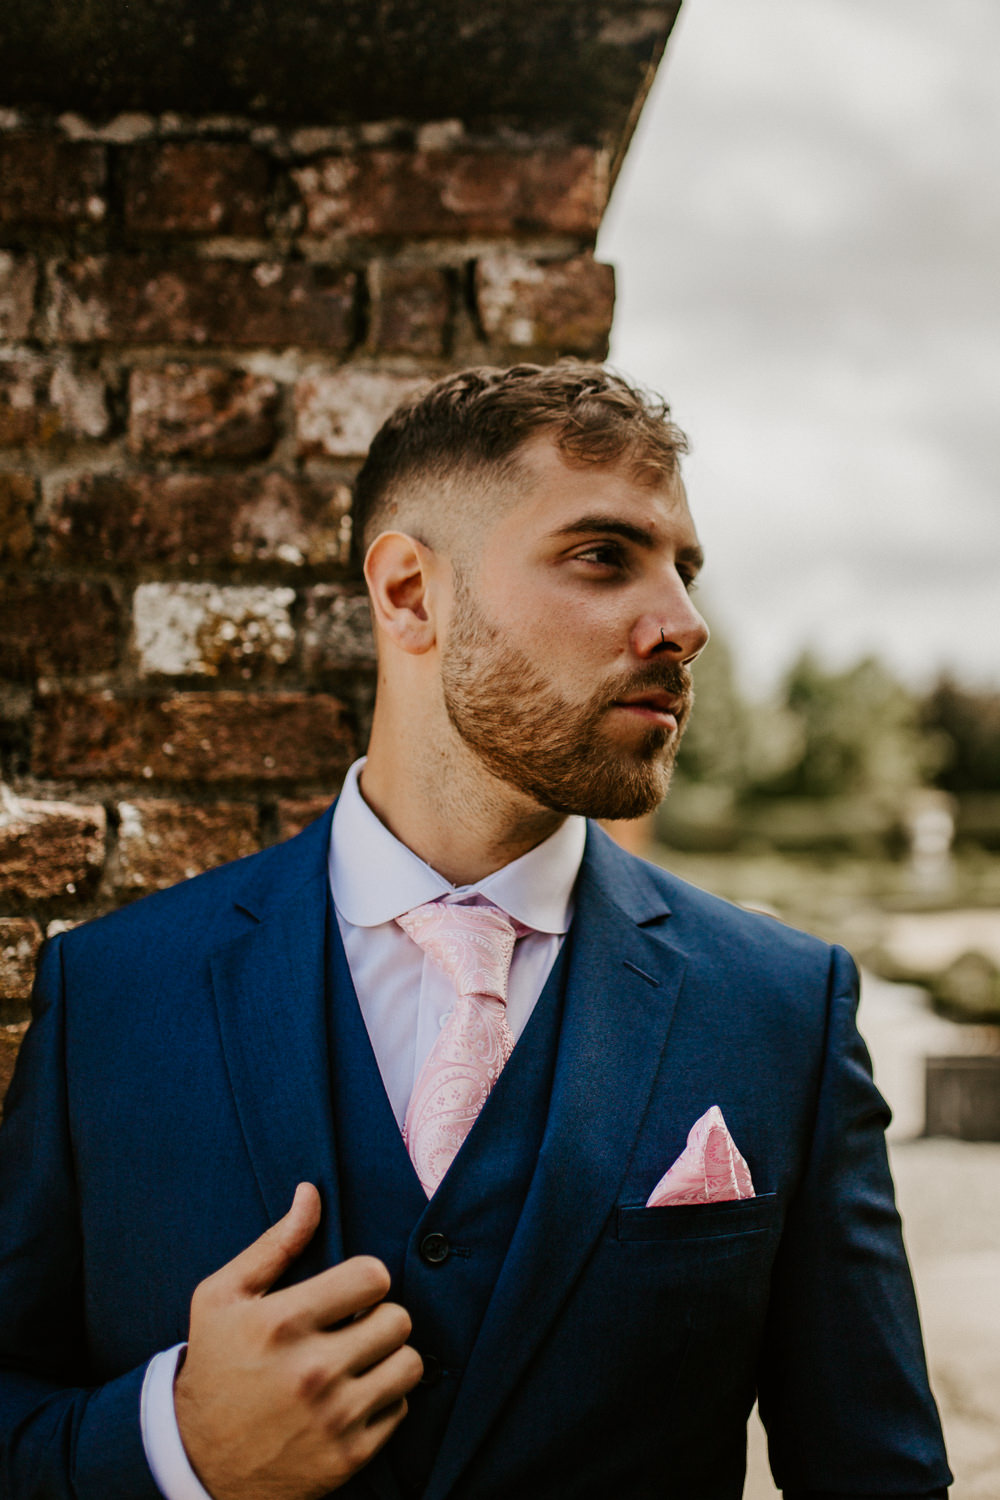 Groom Suit Pink Paisley Tie Pocket Square Blue Rich Romantic Wedding Ideas Daze of Glory Photography Catherine Spiller Photography